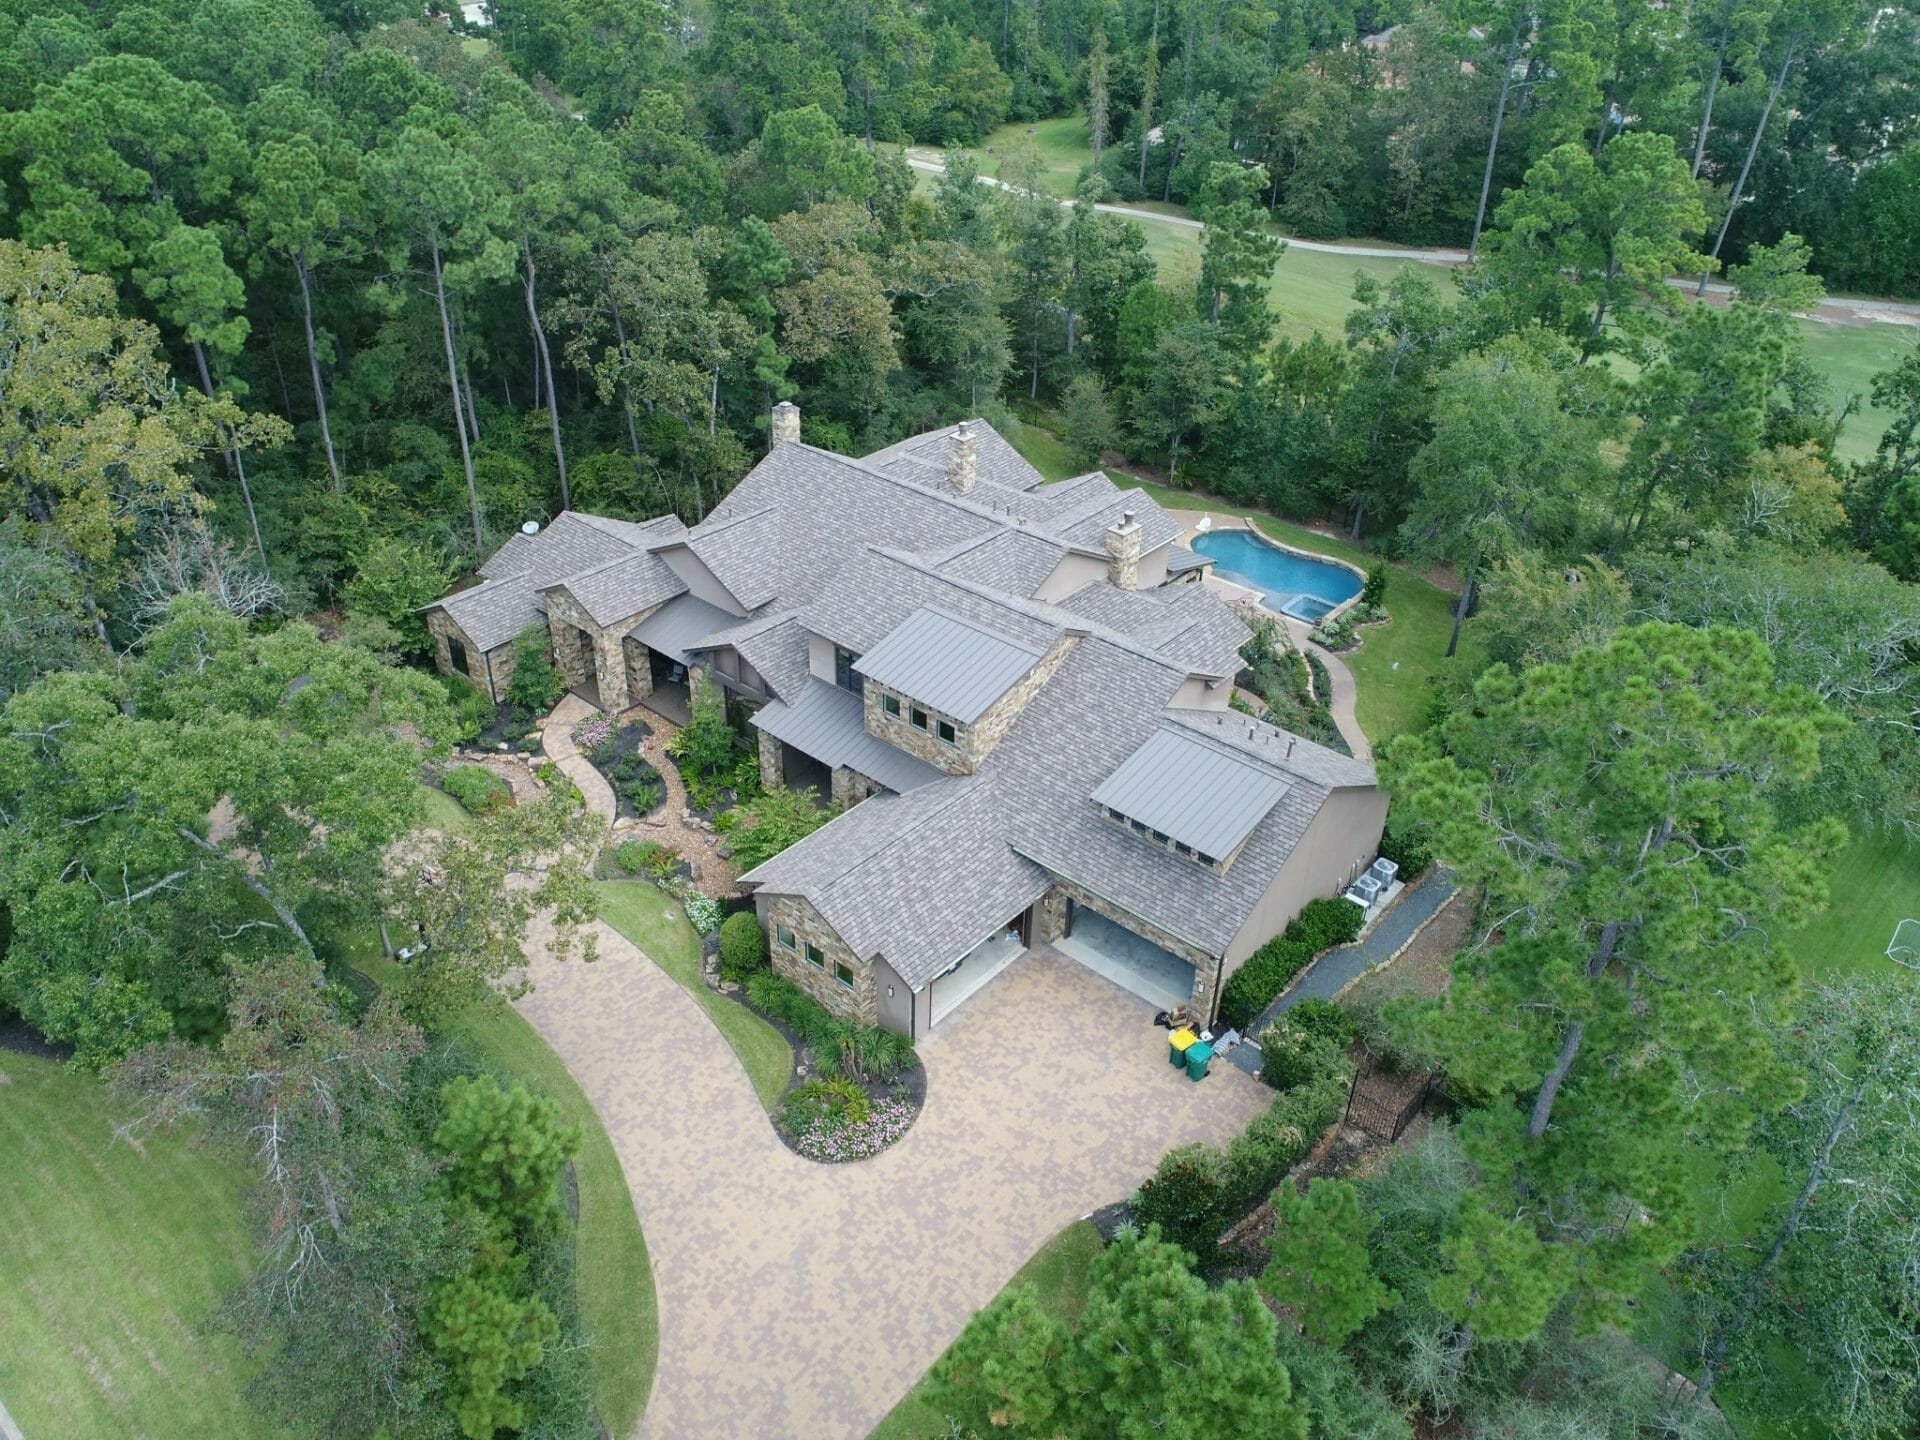 Drone Aerial Photography Houston